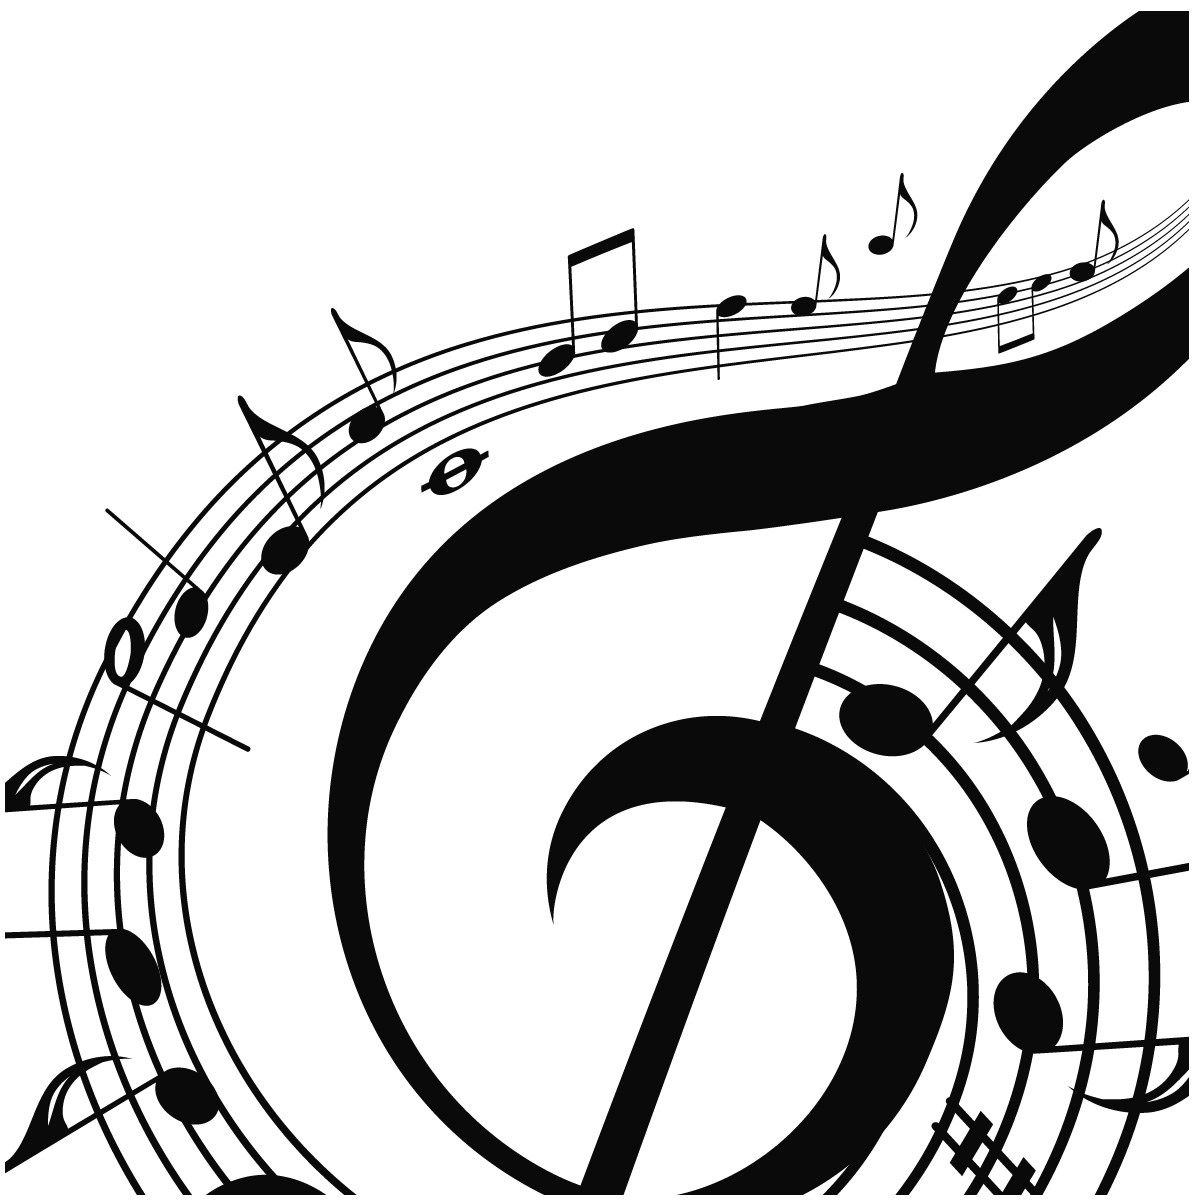 Coloring pages question mark - Music Notes Coloring Page